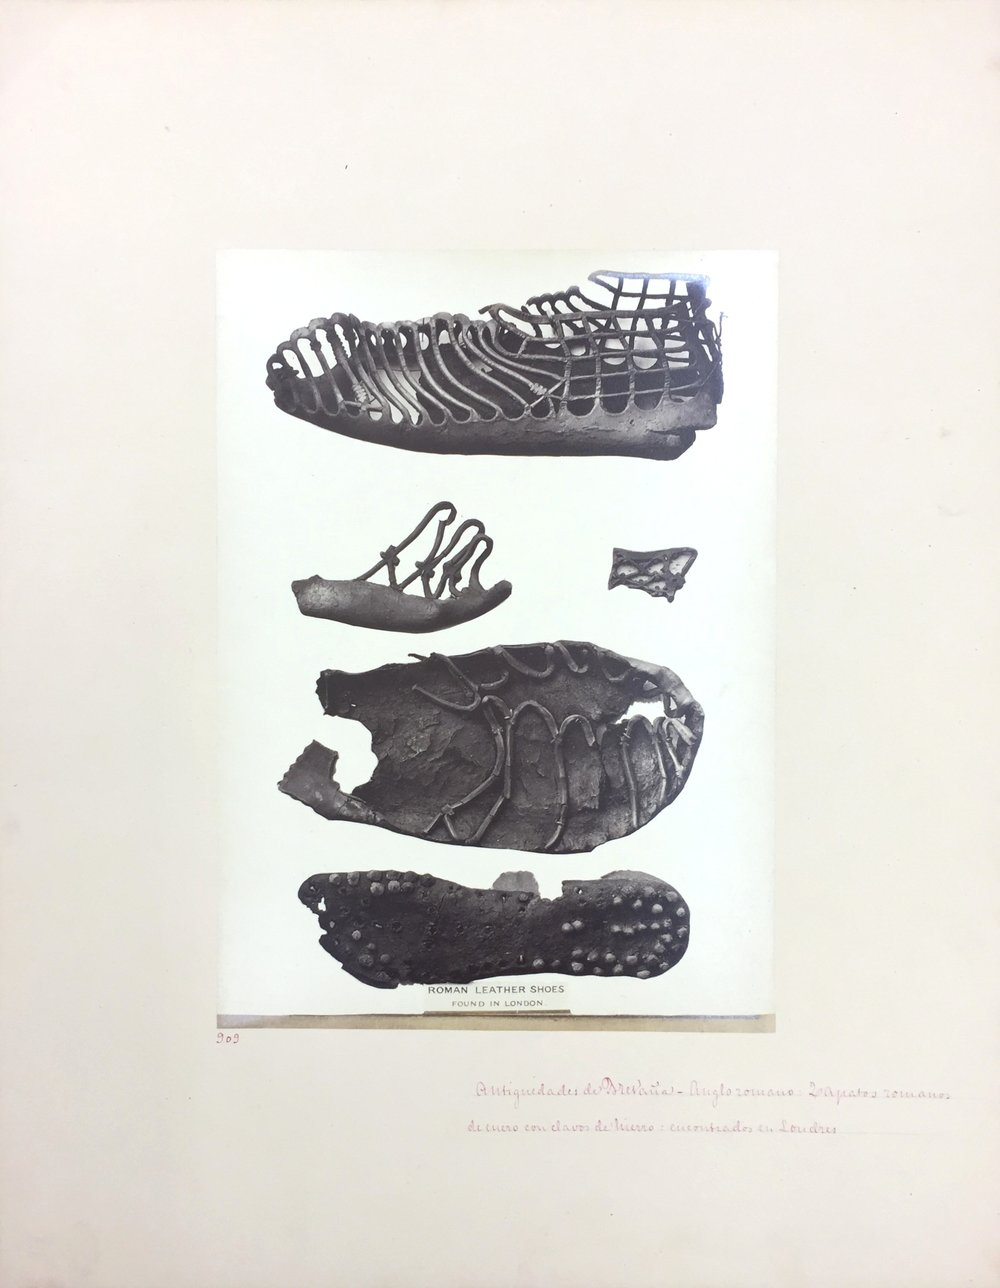 Anglo-Roman Leather Shoes, No. 909, Antiquities of Britain, British Museum , 1872, Photographed by Stephen Thompson, Vintage albumen print, Photograph: 20 x 27.5 cm, Mount board: 35.5 x 45.5 cm